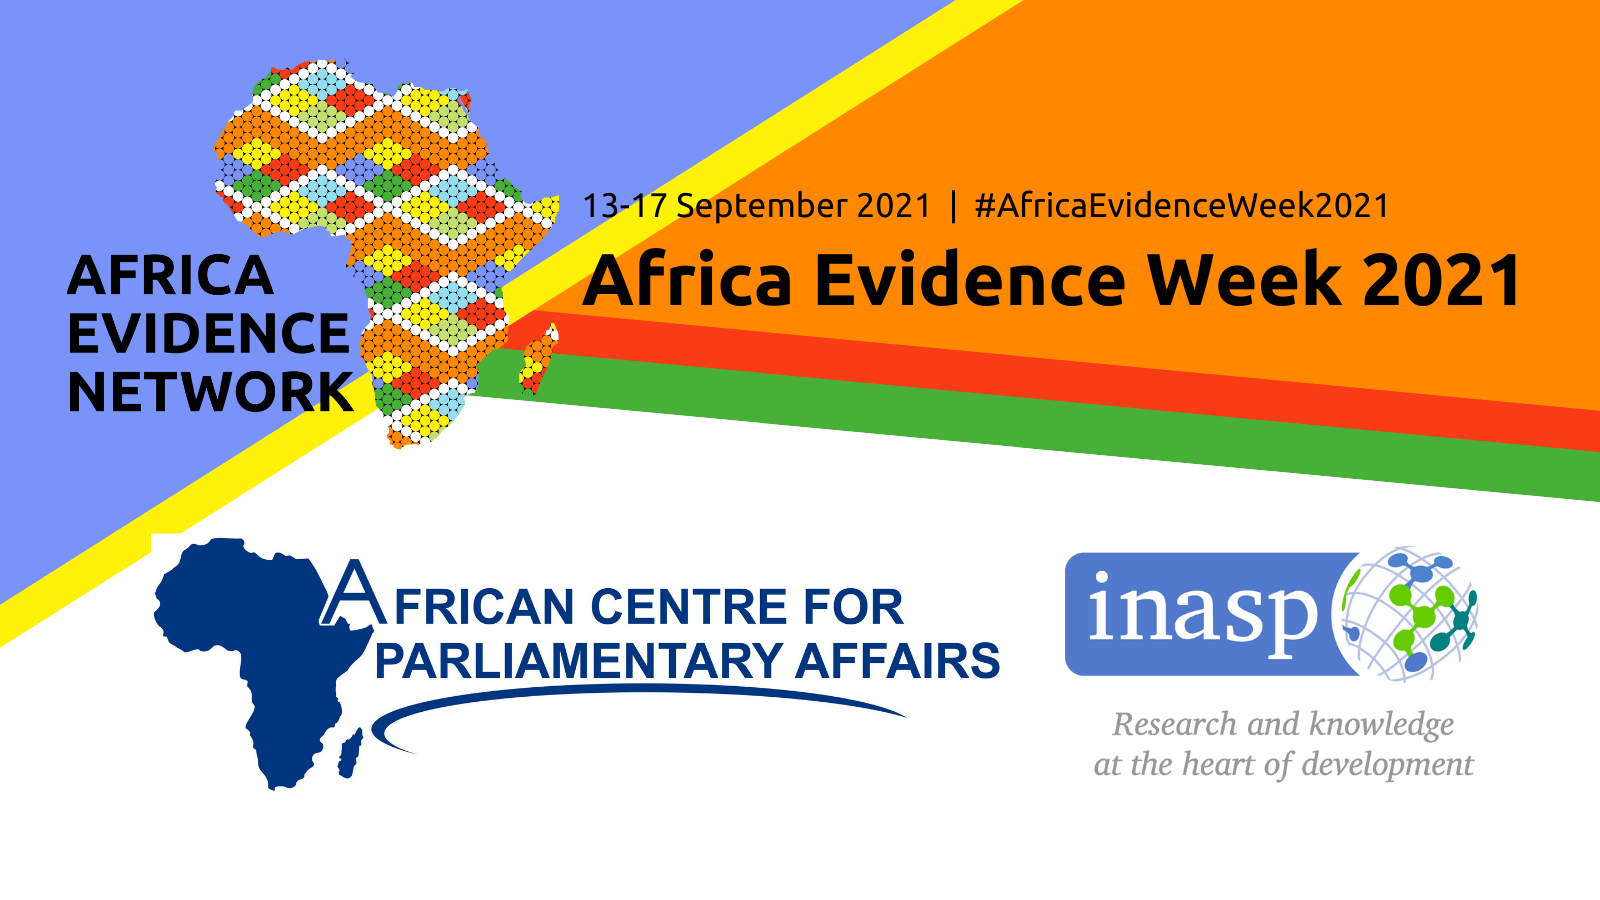 Africa Evidence Week 2021 event: Institutionalizing evidence-use in the Parliament of Ghana: reflections from the Data for Accountability Project